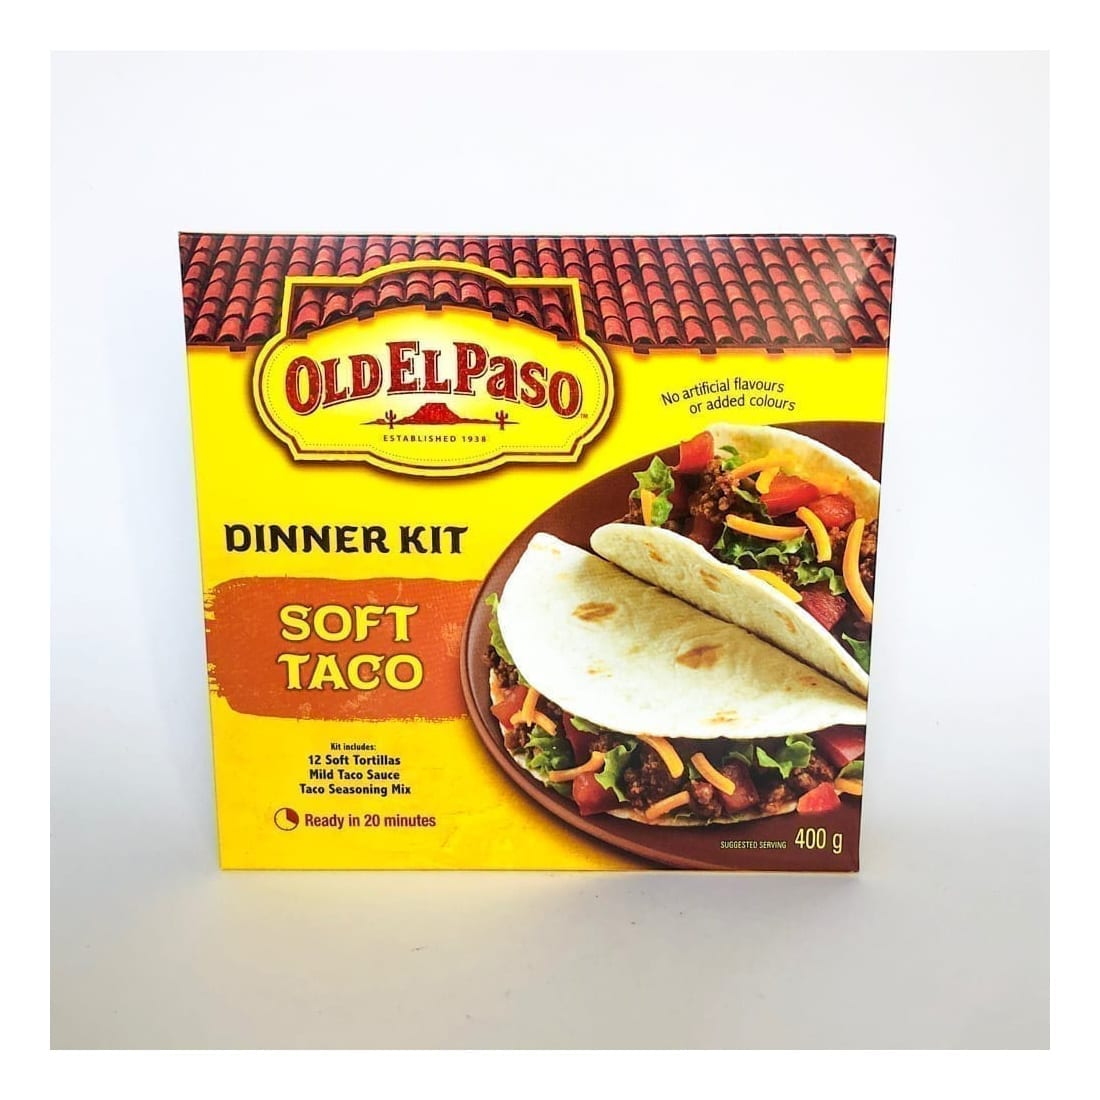 Old El Paso Taco Dinner Kit Summerhill Market